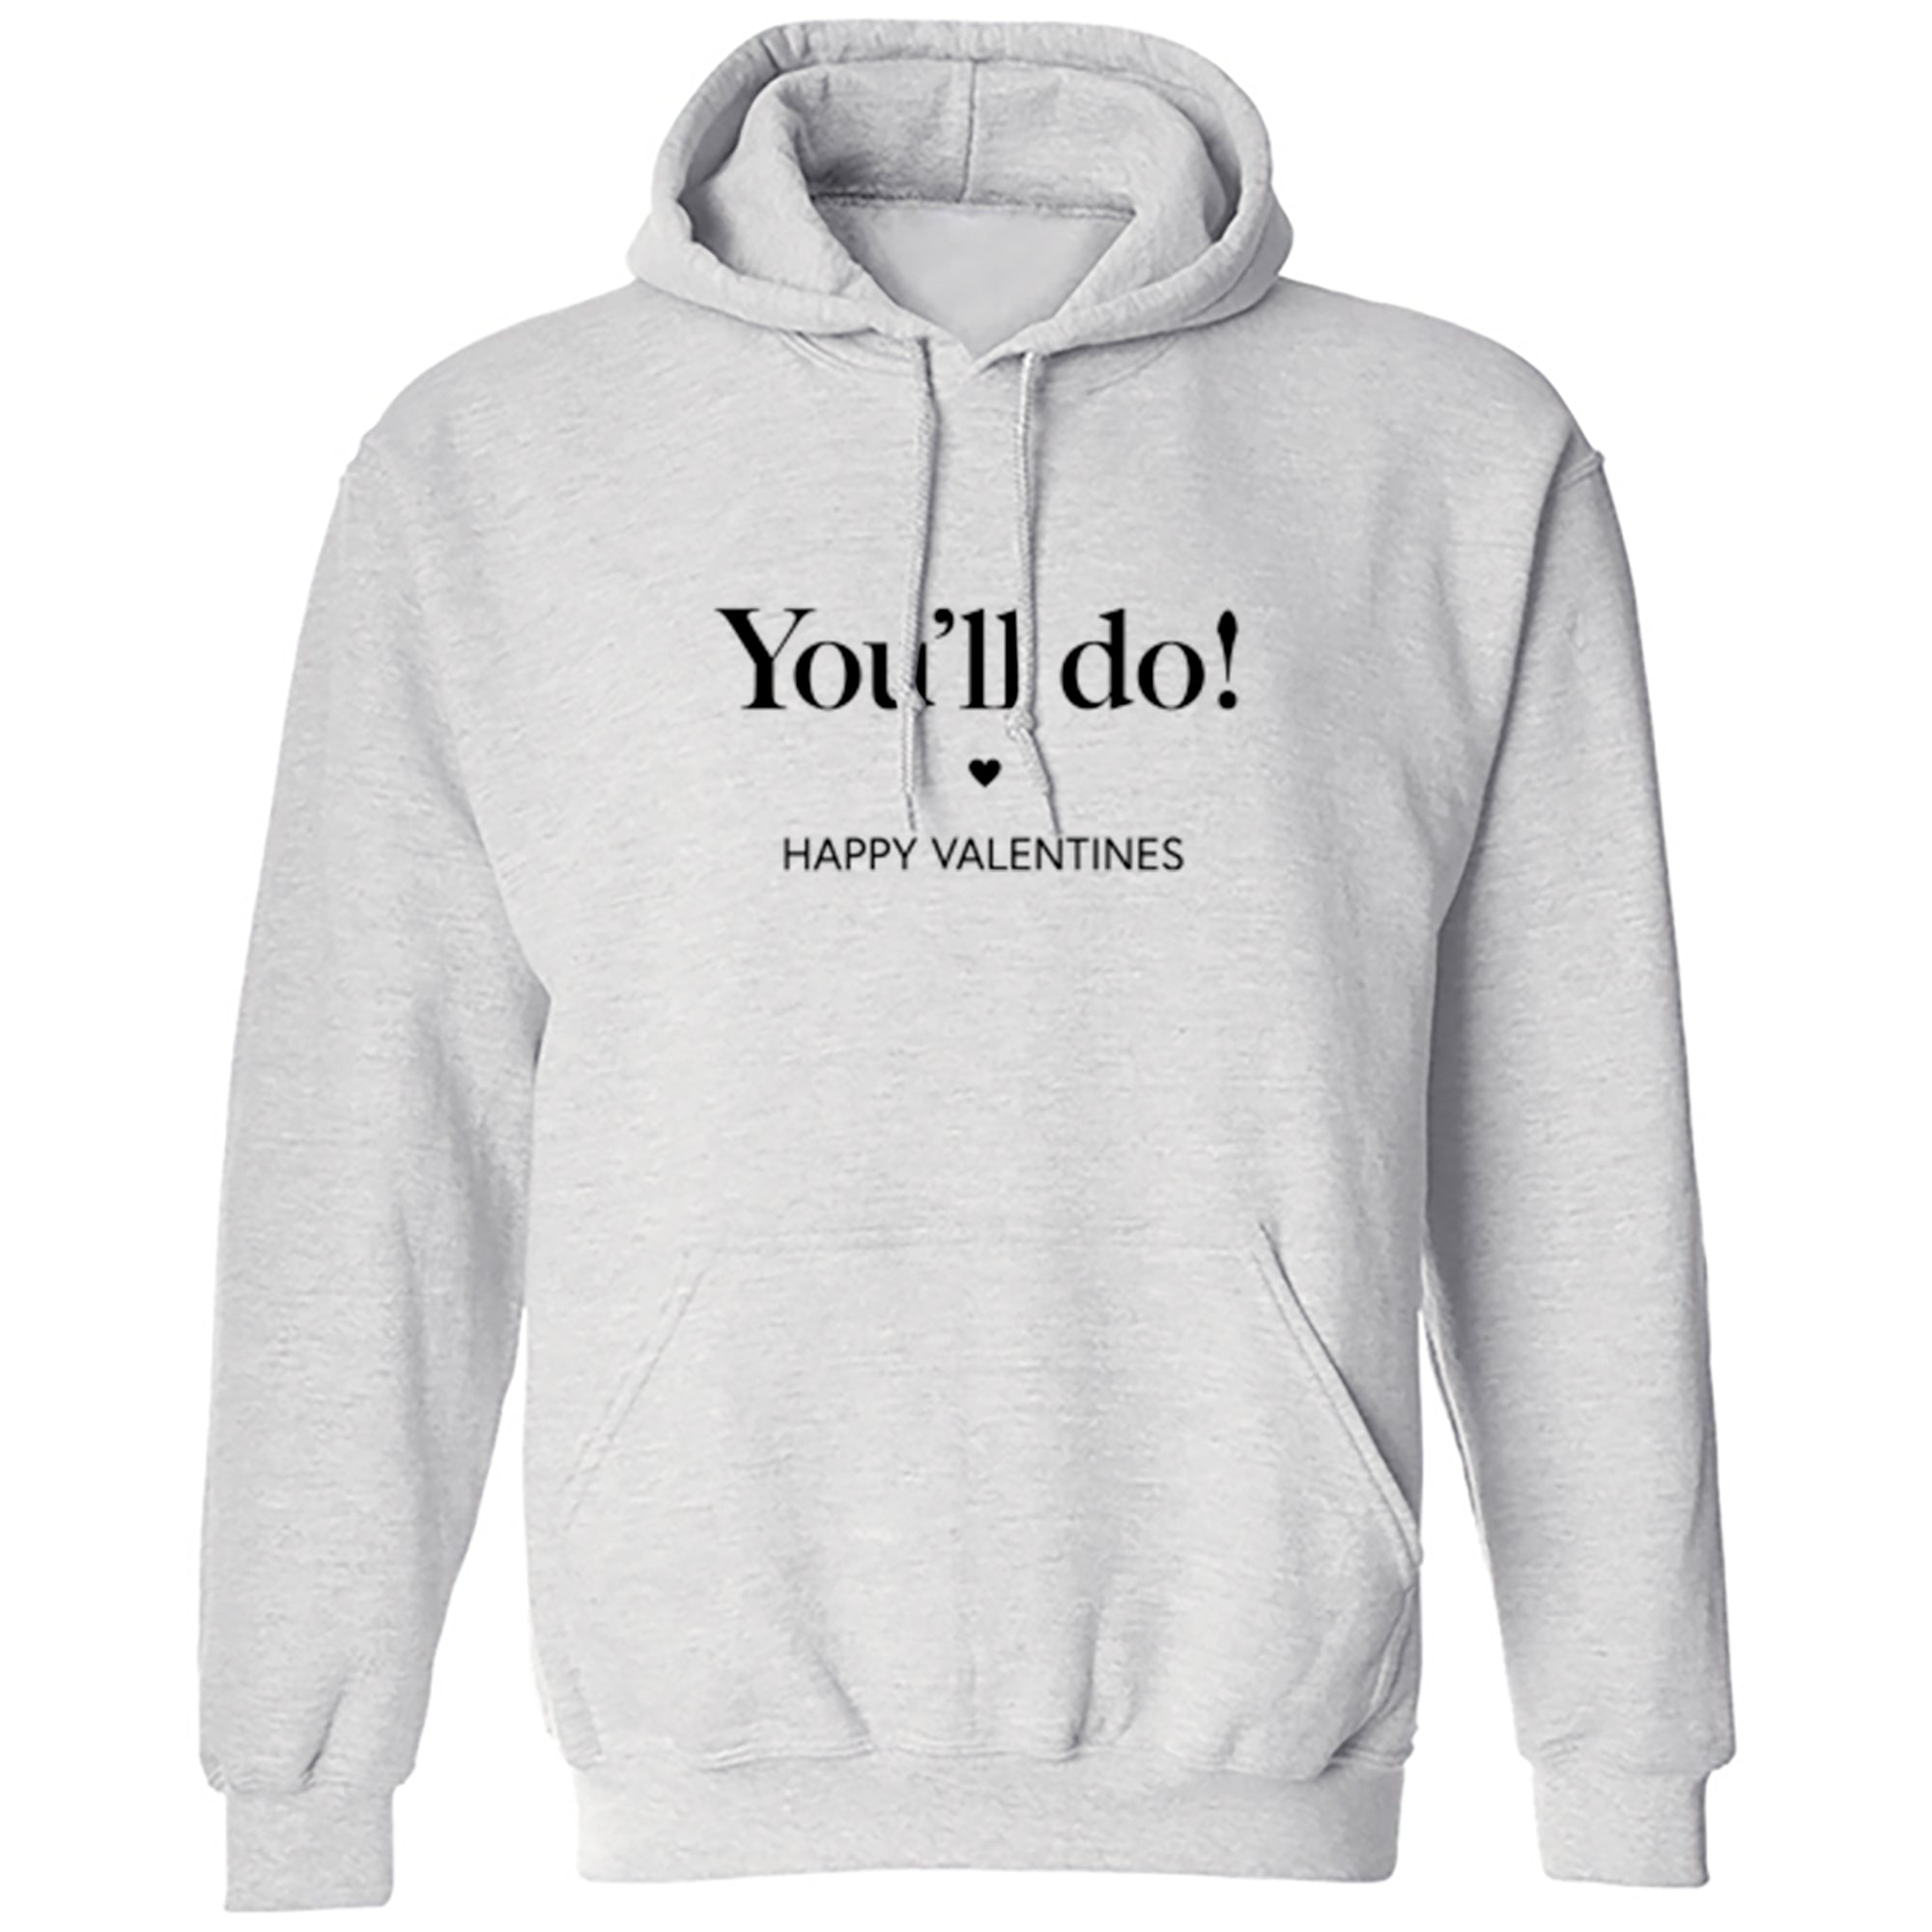 You'll Do! Unisex Hoodie A0060 - Illustrated Identity Ltd.